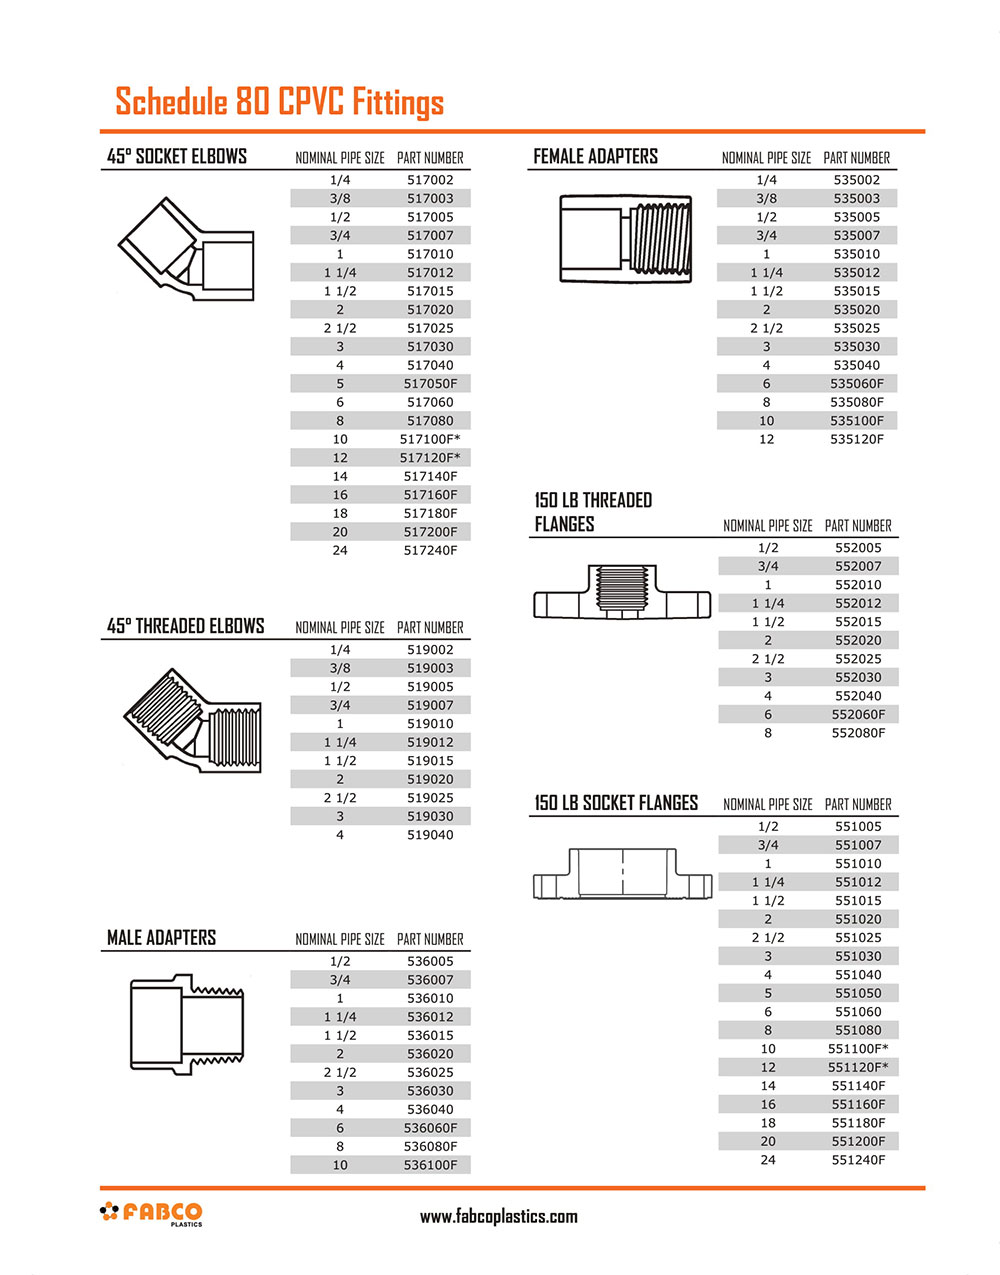 Schedule 80 Grey CPVC Fittings